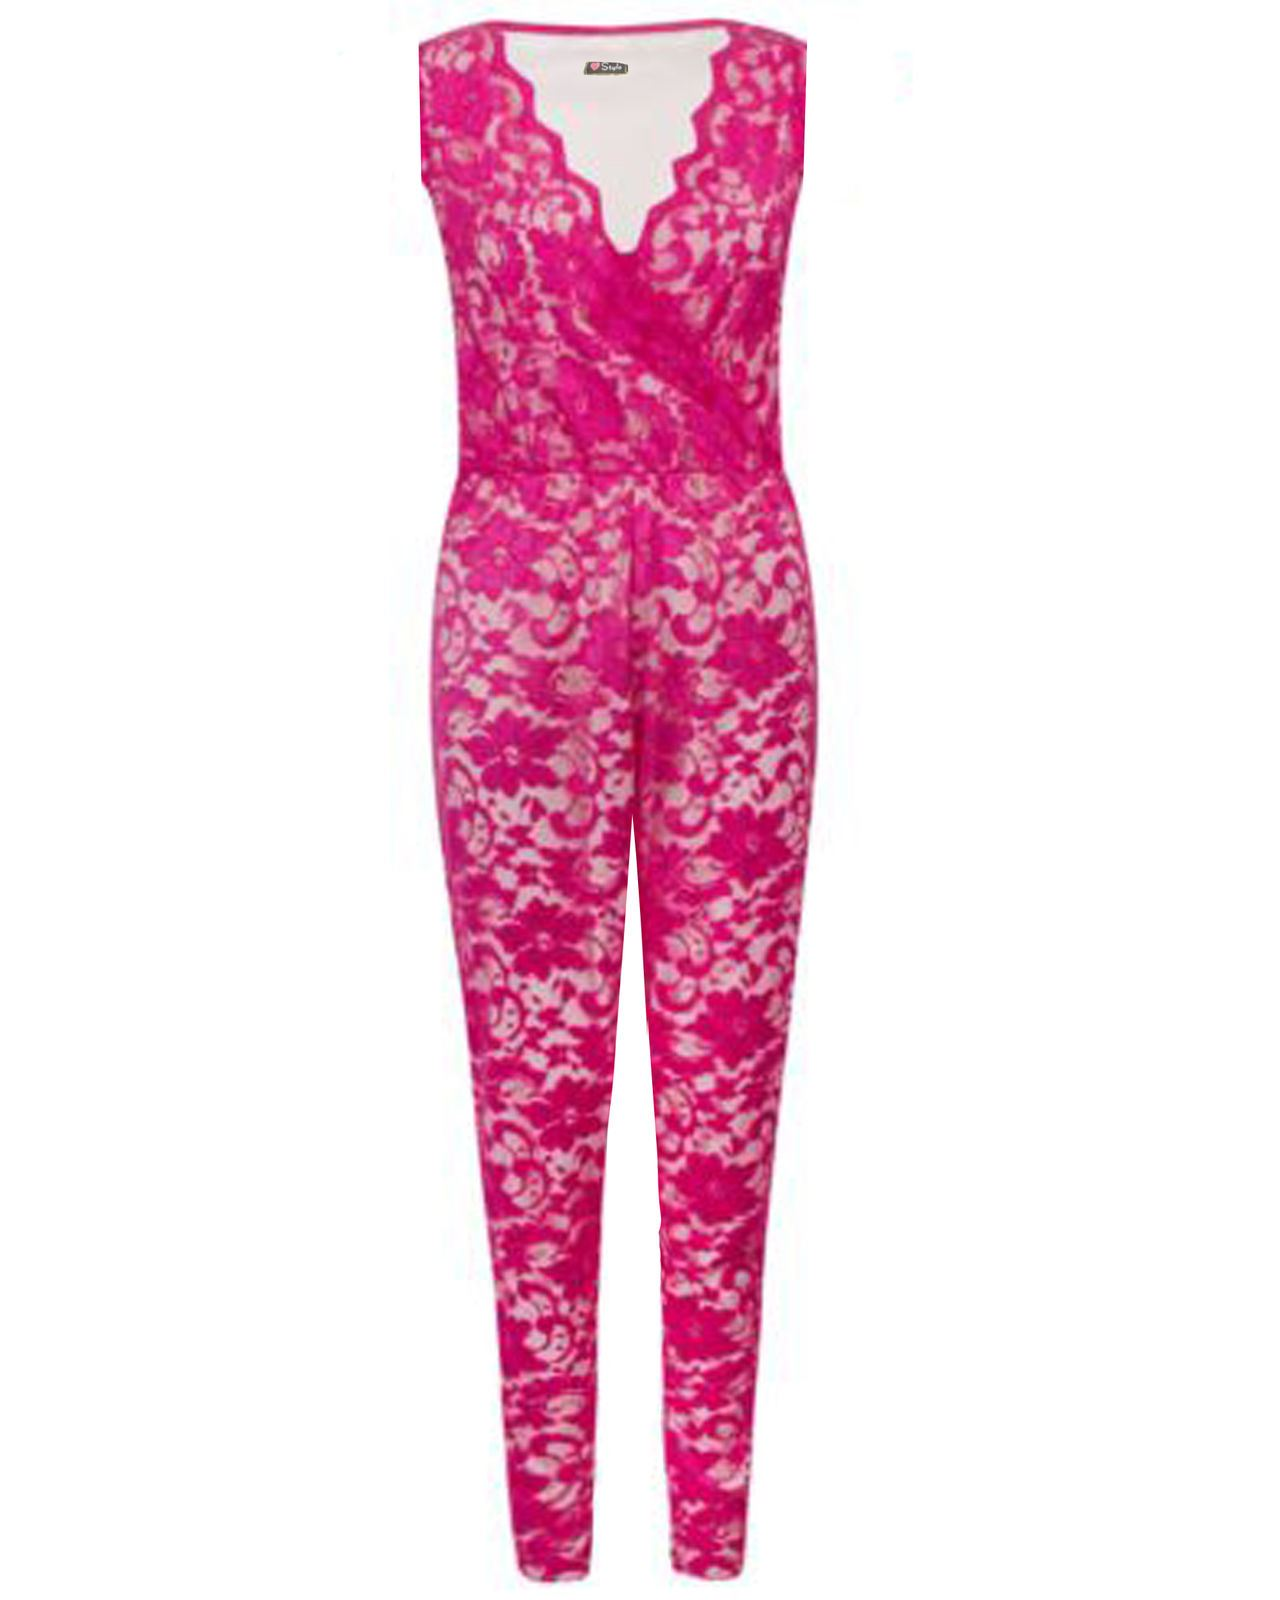 a3fca9245d2 Womens Celebrity Net Lace Floral Ladies Sleeveless Jumpsuit Playsuit Dress  L Fuschia. About this product. Picture 1 of 2  Picture 2 of 2